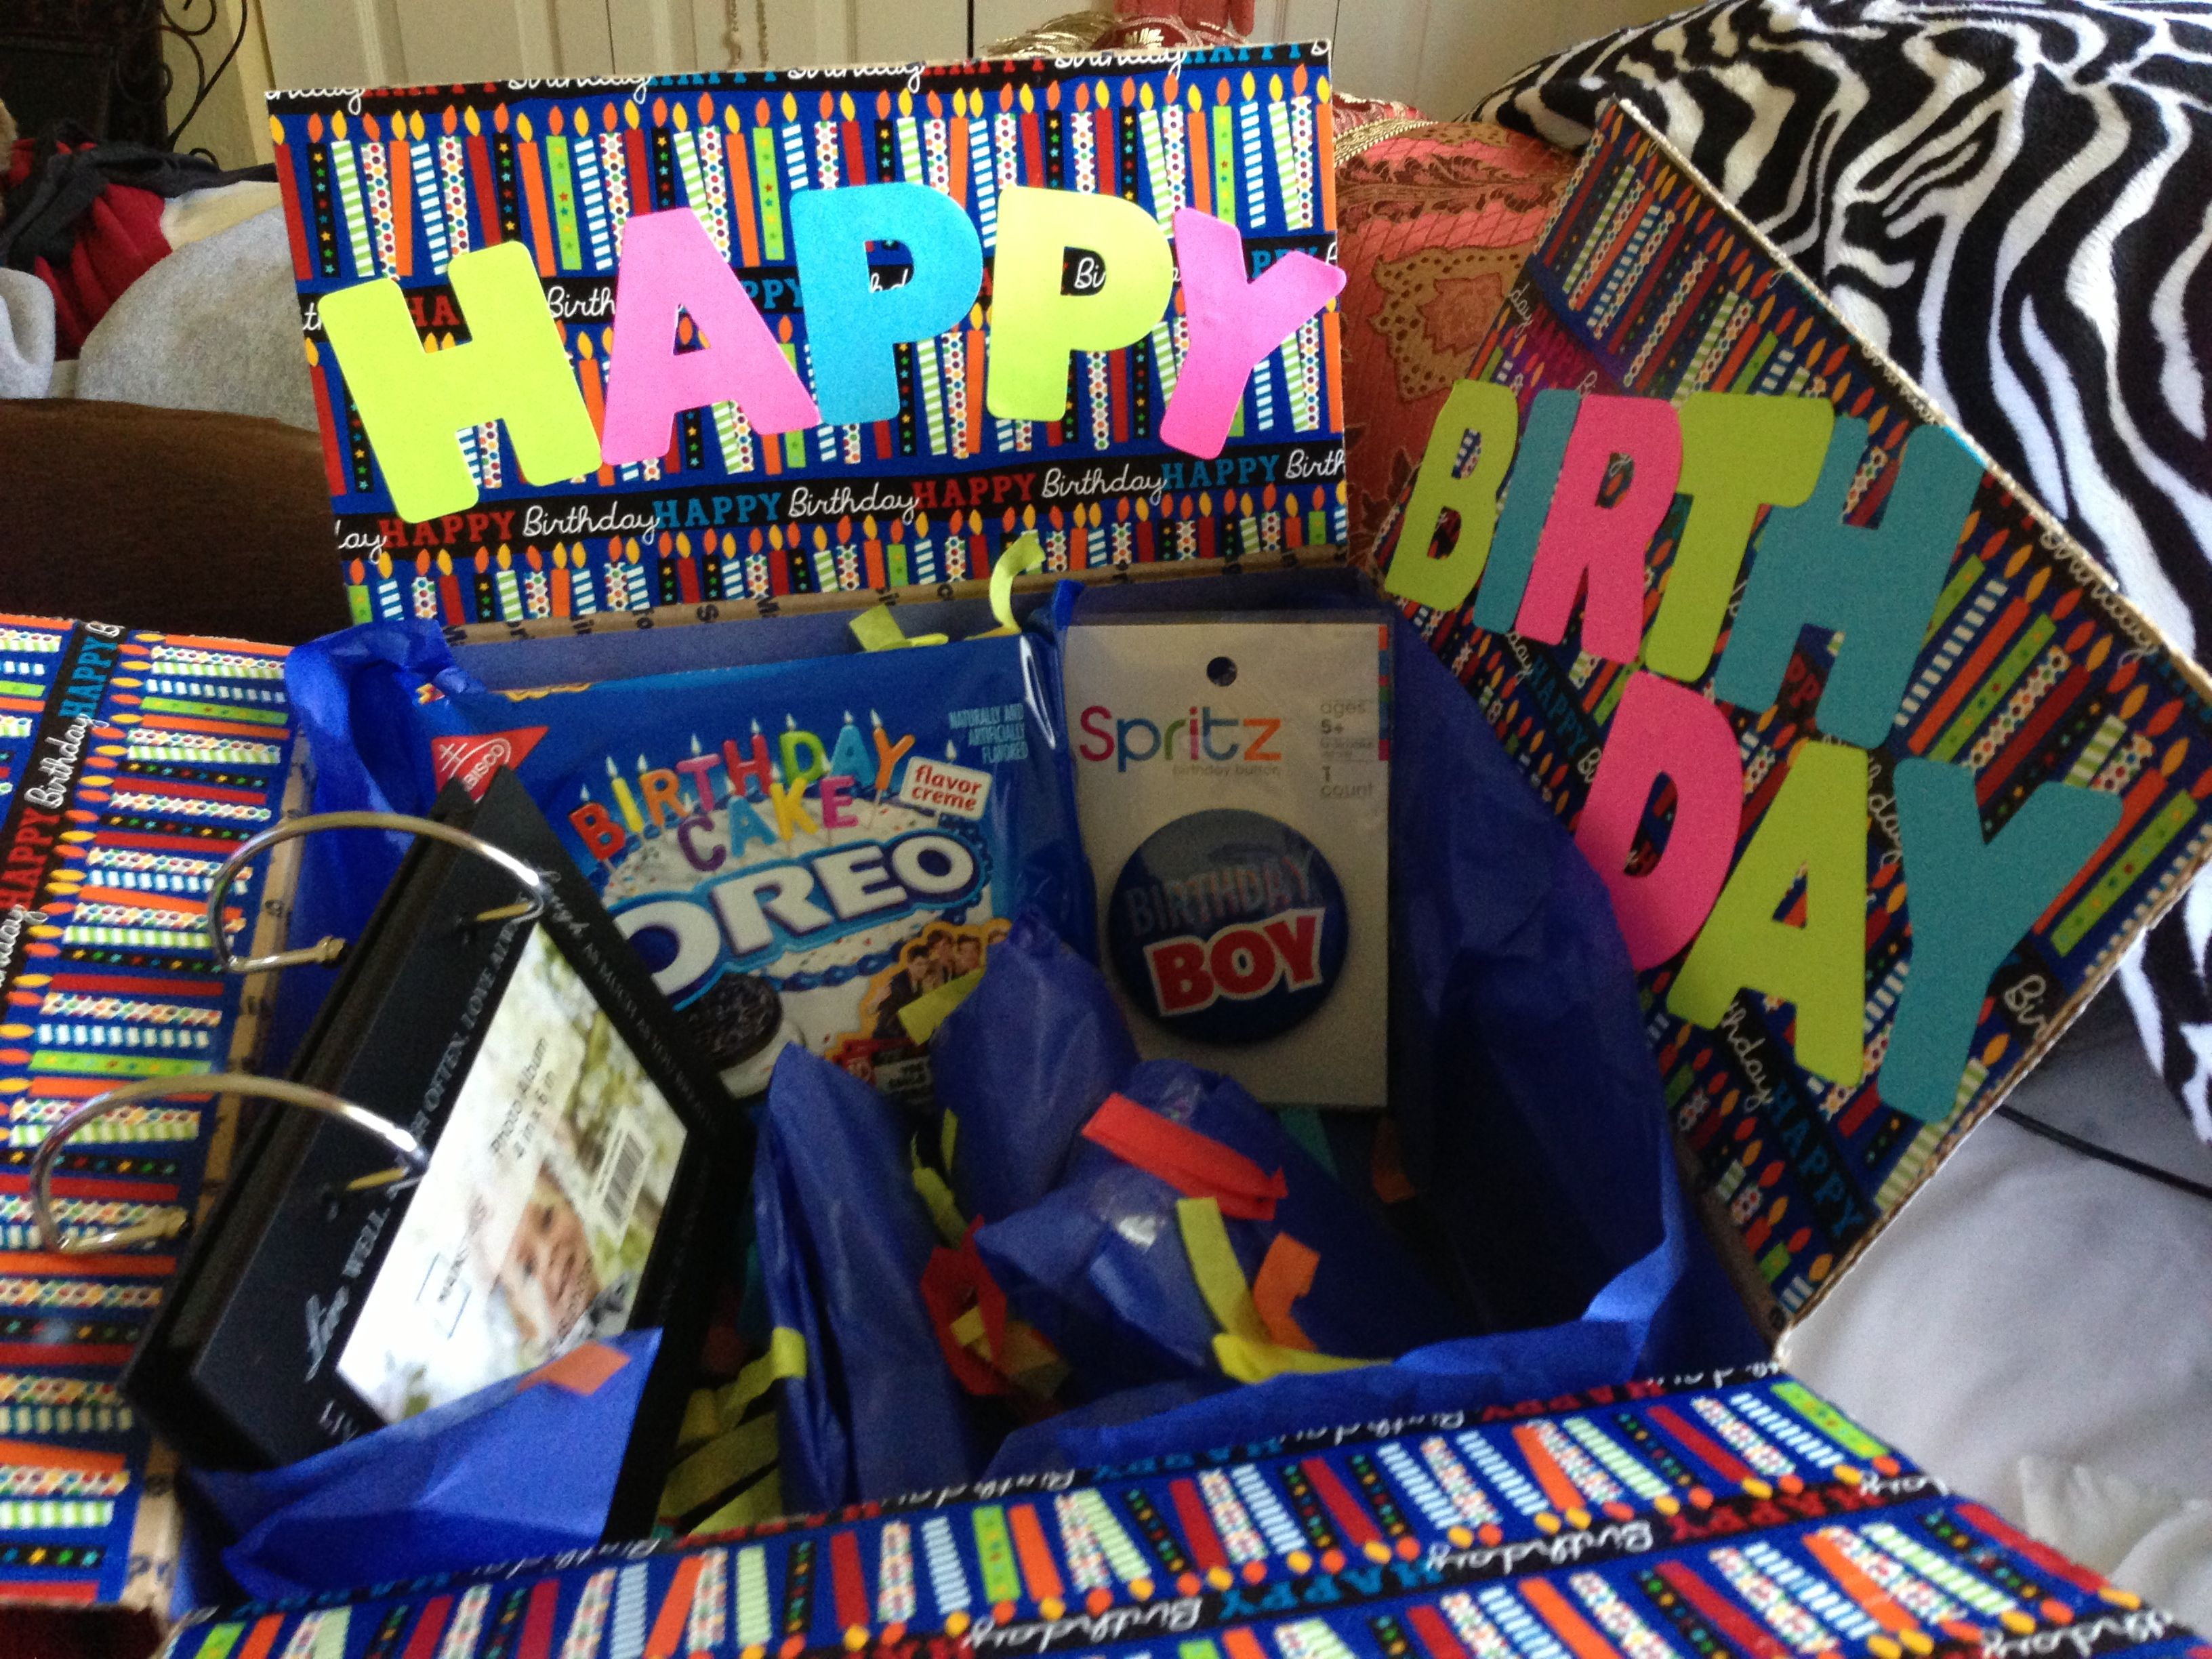 Birthday care package to boyfriend away in the navy DIY Crafts